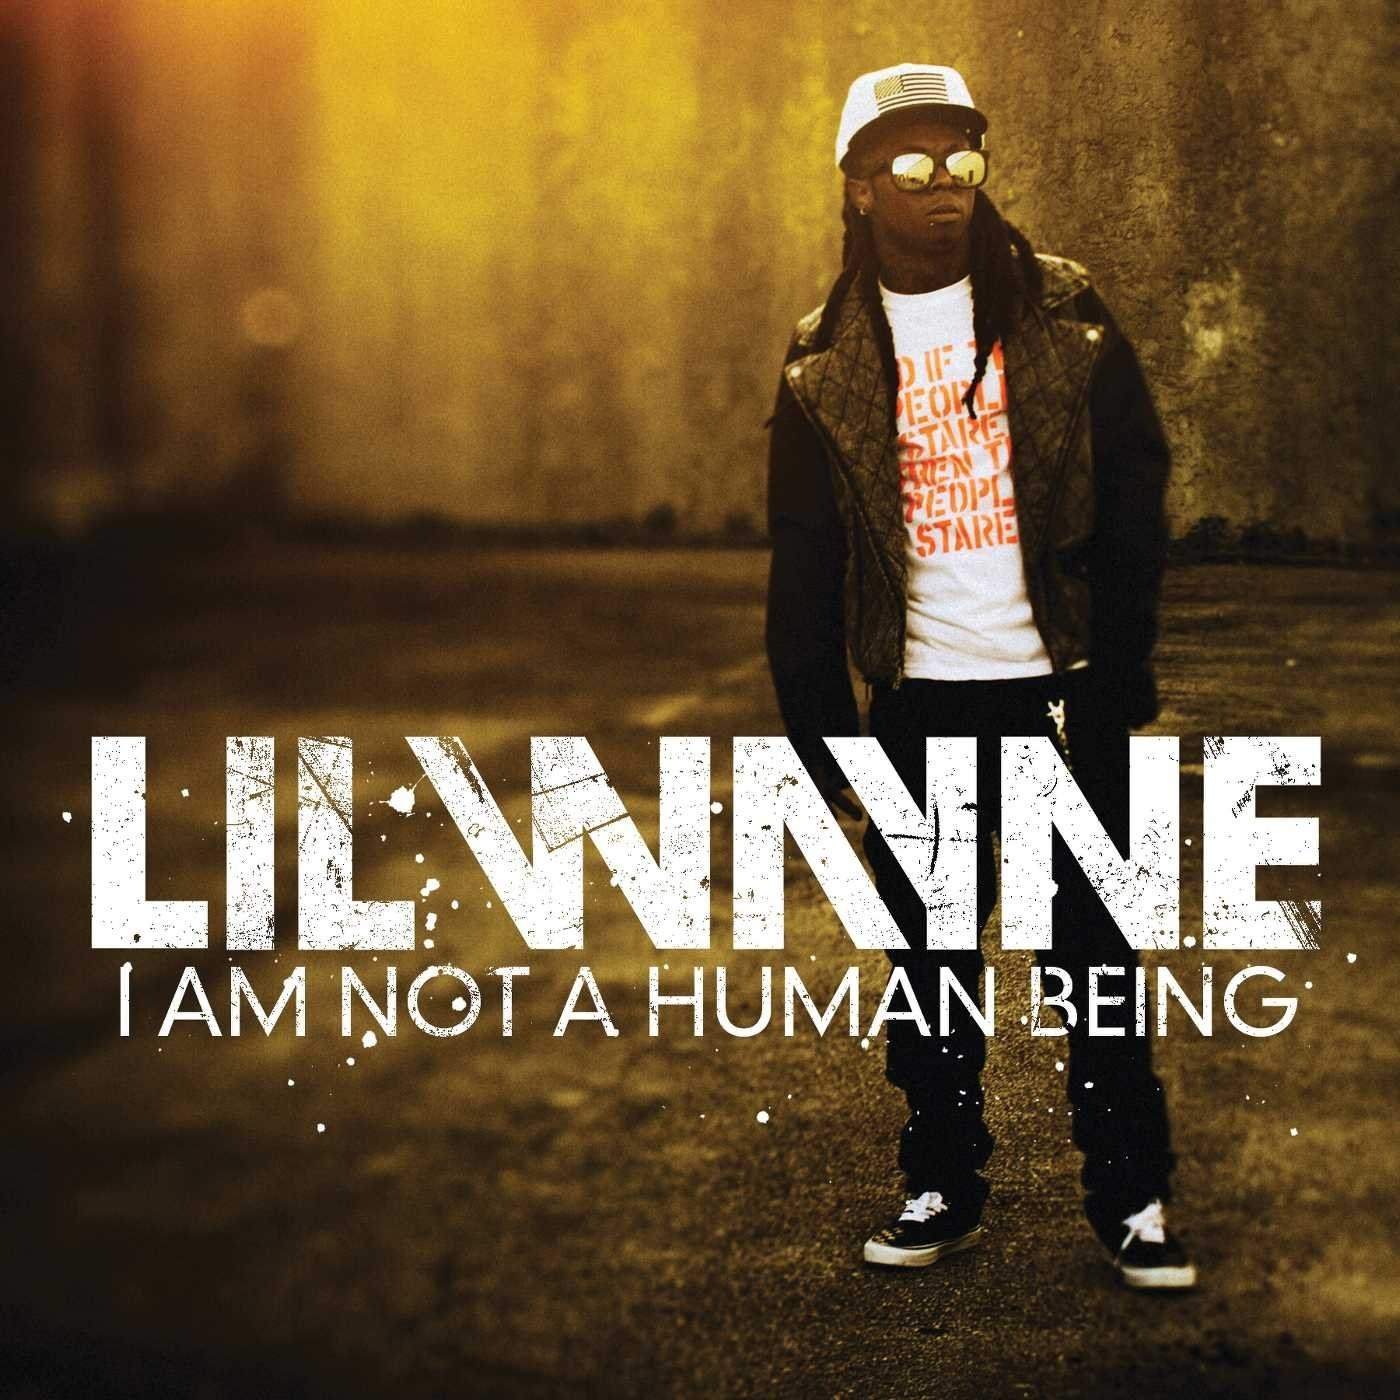 The album cover of I Am Not a Human Being featuring Lil Wayne looking to the side on it while wearing sunglasses